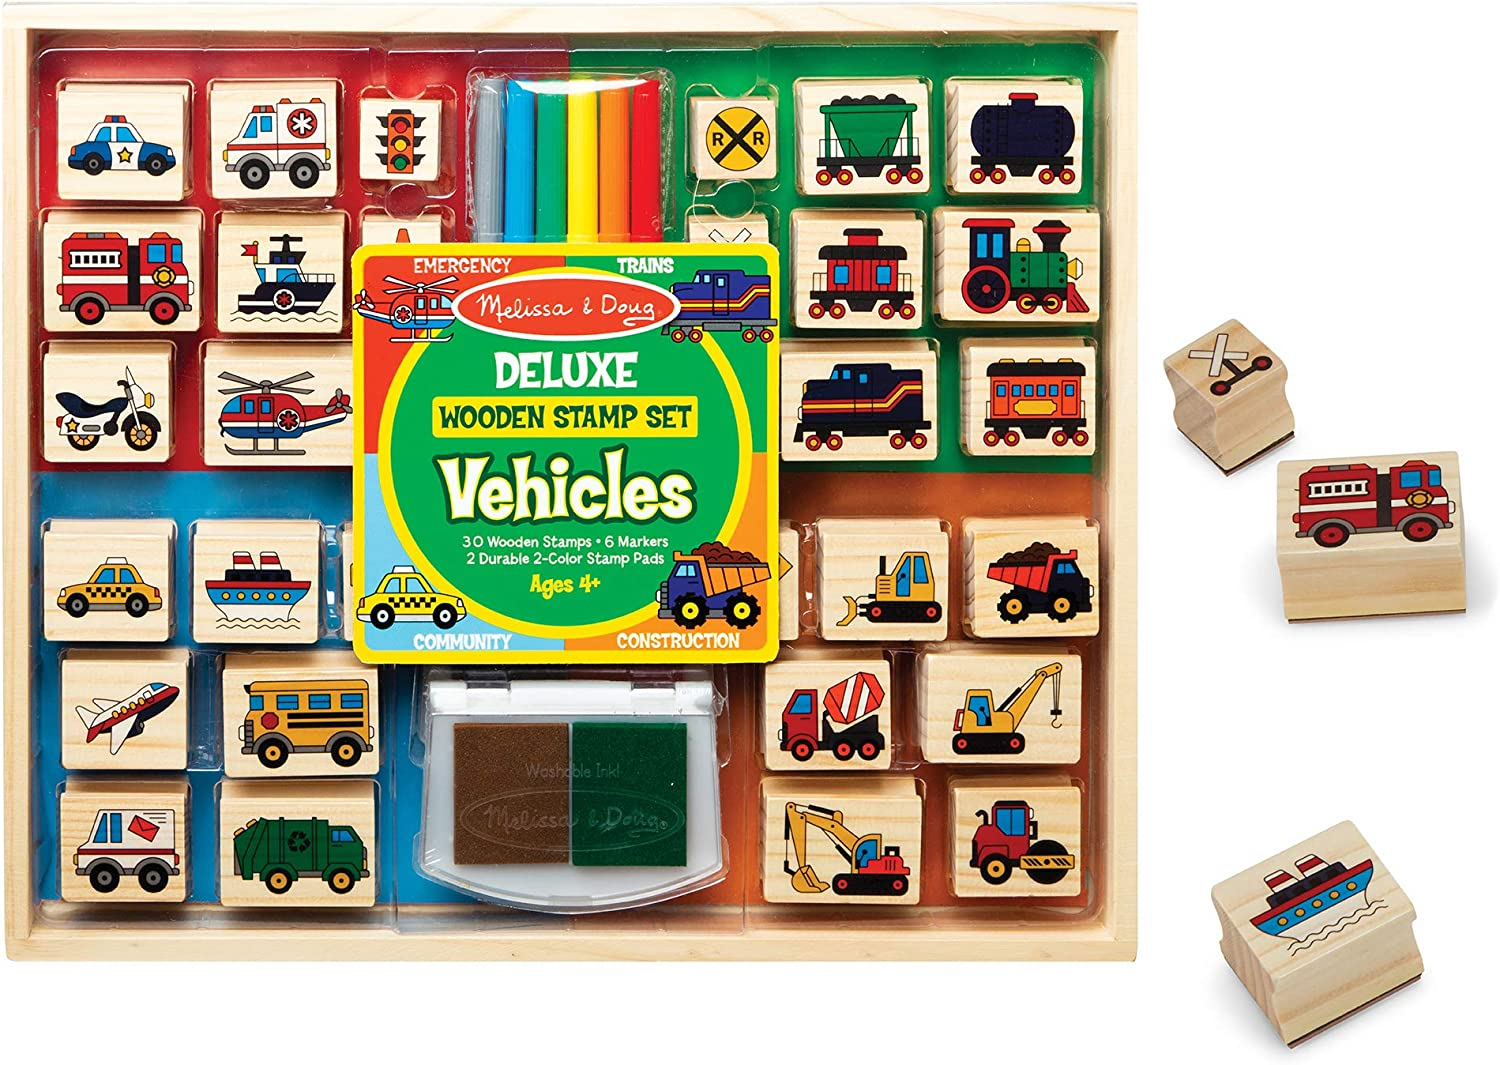 Vehicles 30 Stamps, 6 Markers, 2 Durable 2-Color Stamp Pads Melissa /& Doug Deluxe Wooden Stamp and Coloring Set